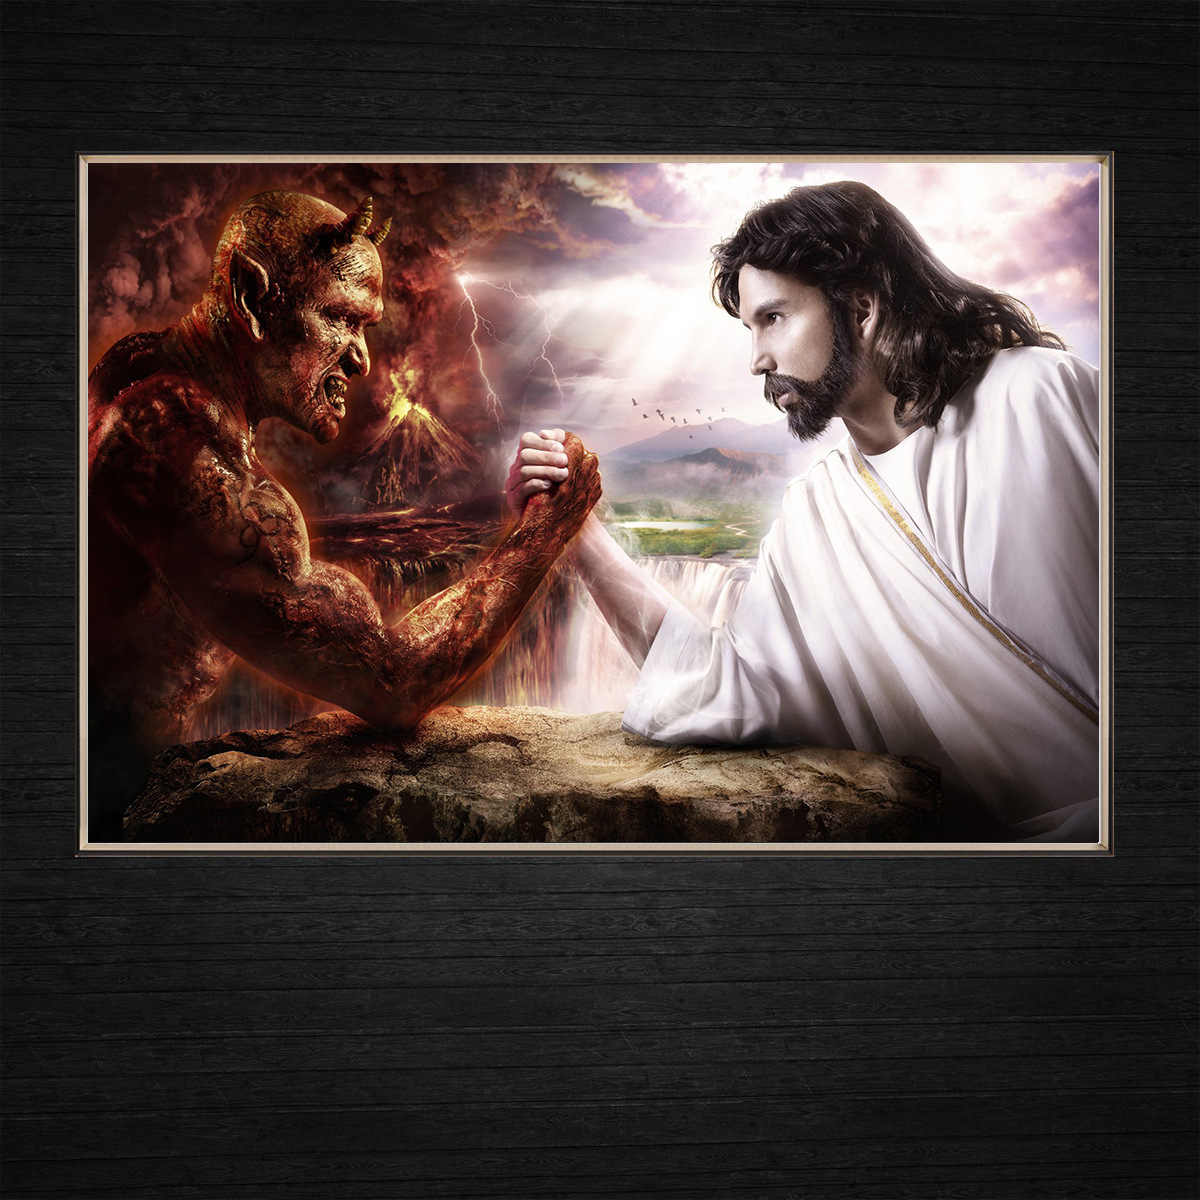 Jesus VS Satan Competition Between Angels and Devils Modern Wall Art Home Decor Canvas Paintings Oil Painting Kitchen Religious